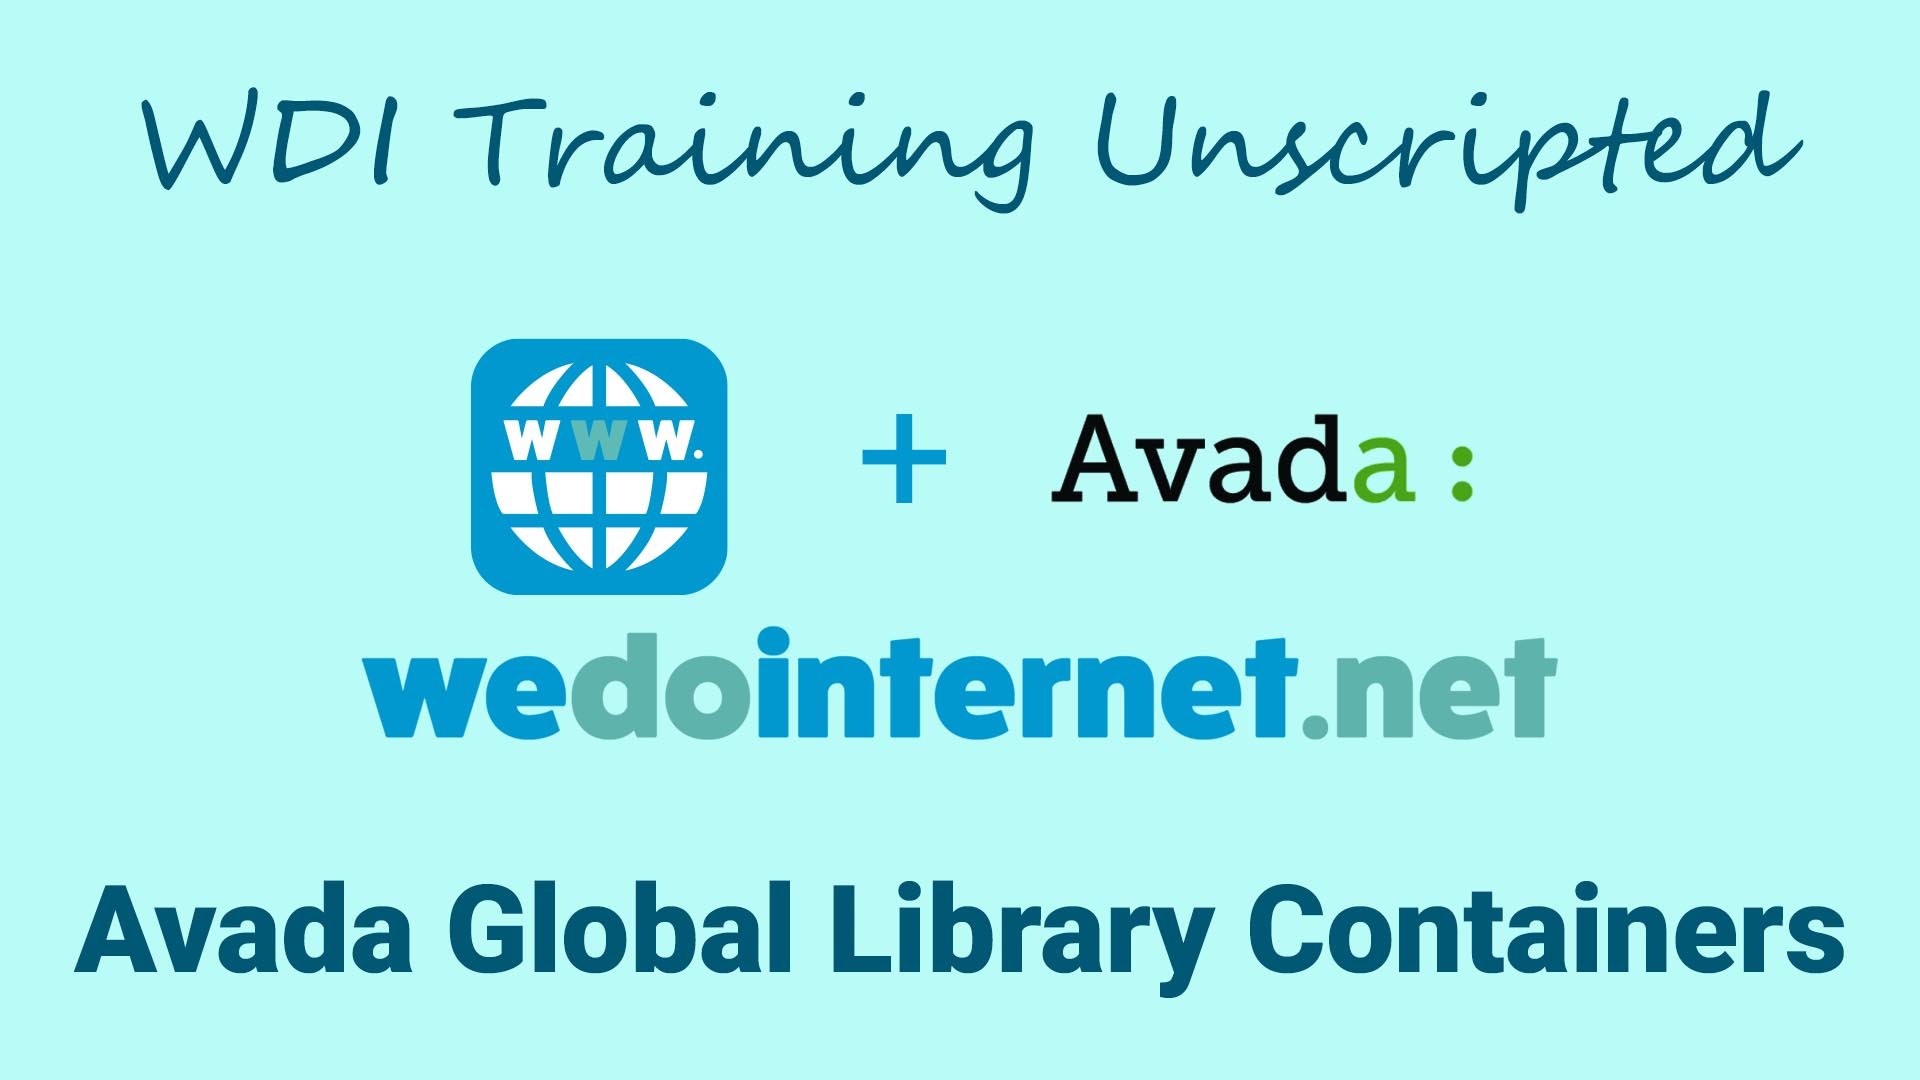 We Do Internet's image of Video Tutorial avada global library and containers